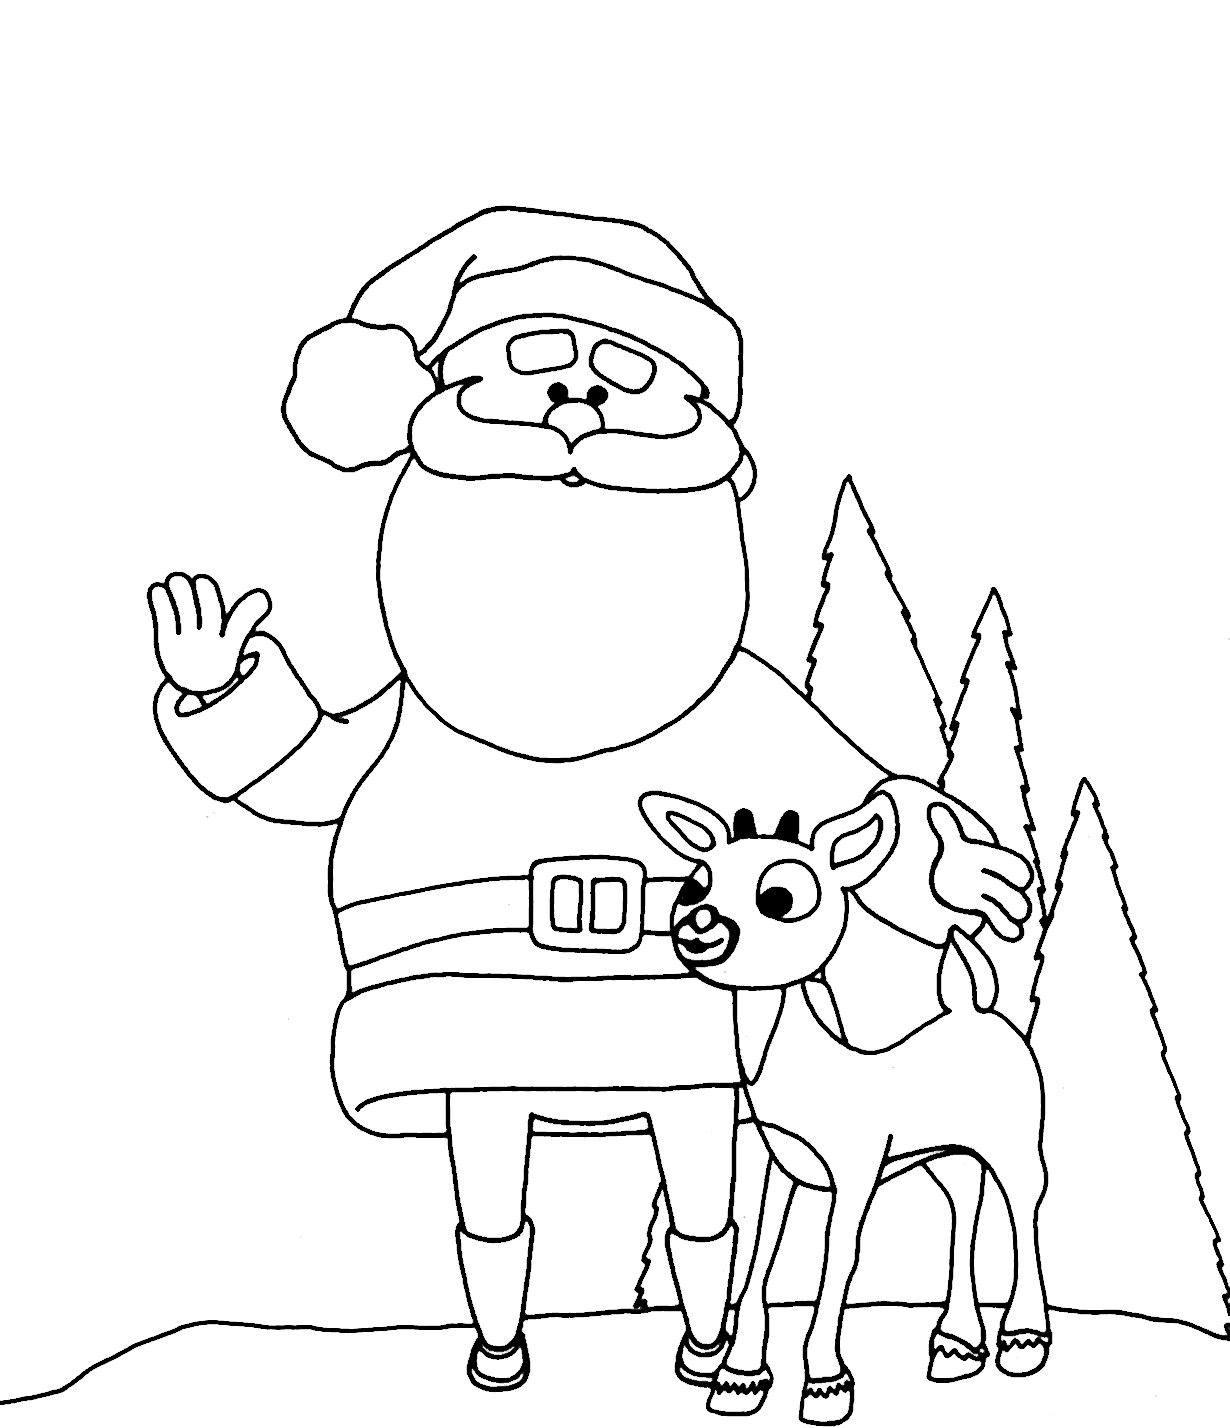 Christmas Reindeer Coloring Pages With Free Printable For Kids